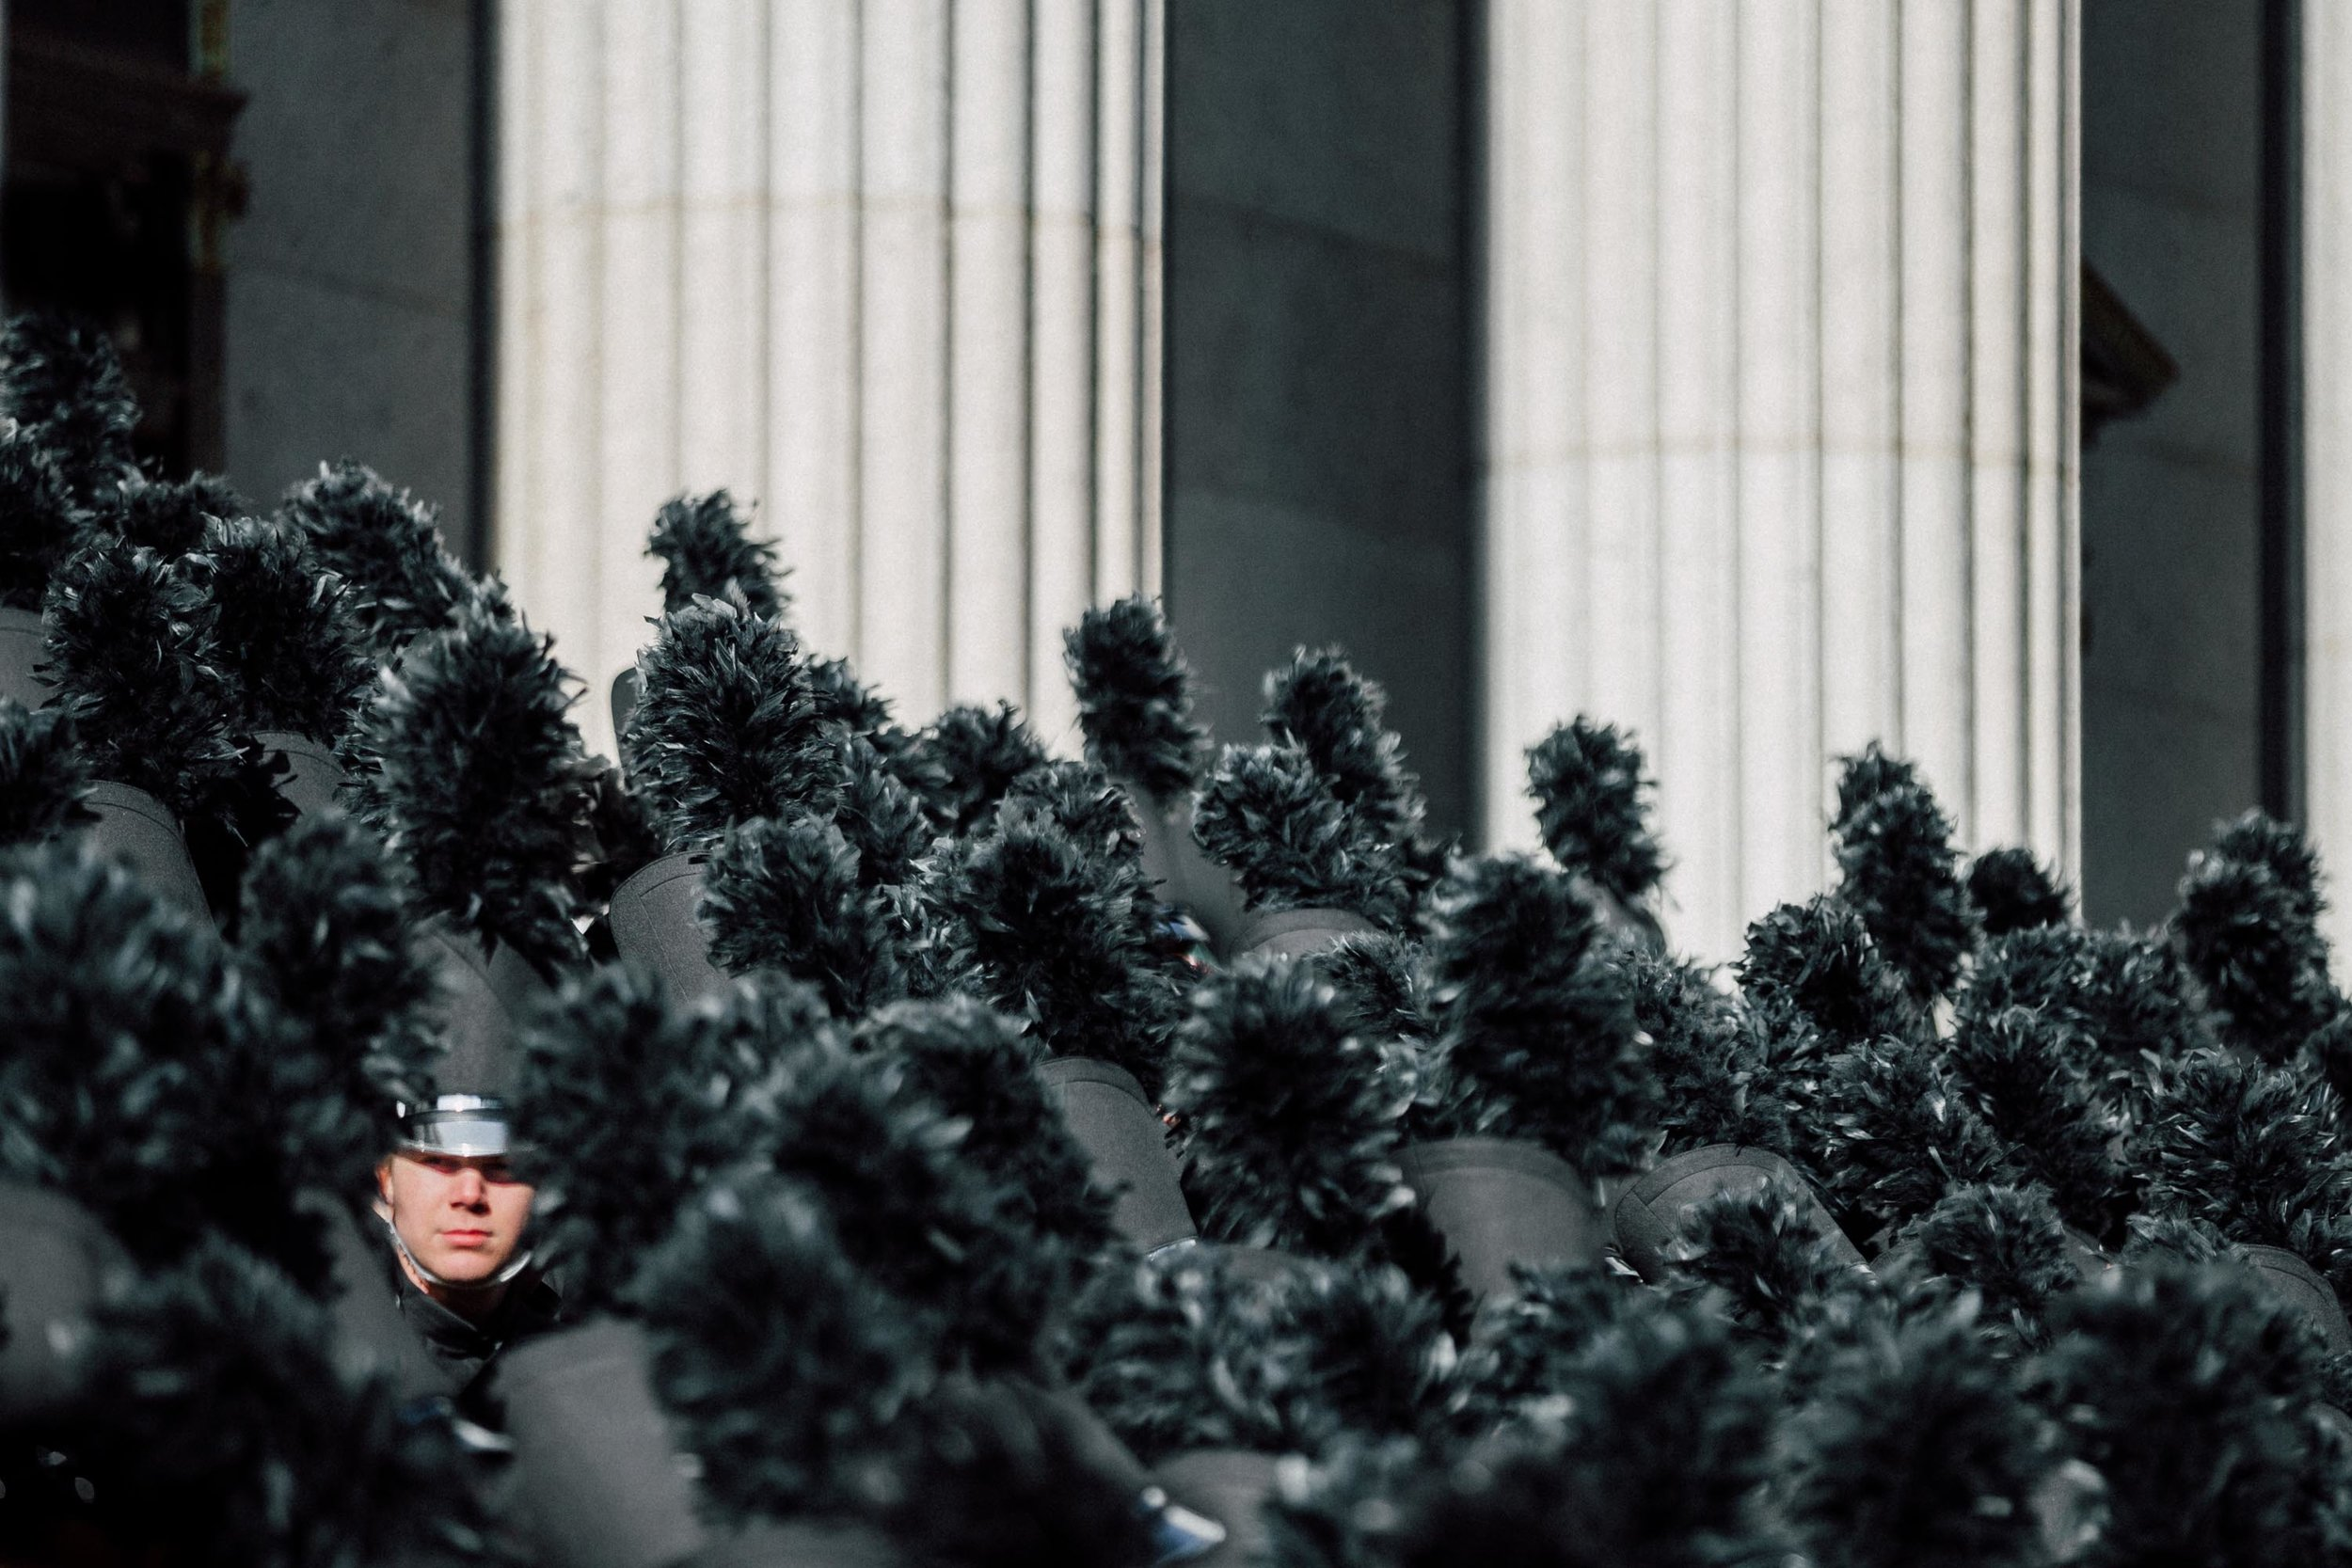 A face looks through a crowd of feathered hats belonging to a marching band in the Macy's Thanksgiving Day Parade, as they stand outside the James A. Farley Post Office Building, New York. 23rd Nov 2017.